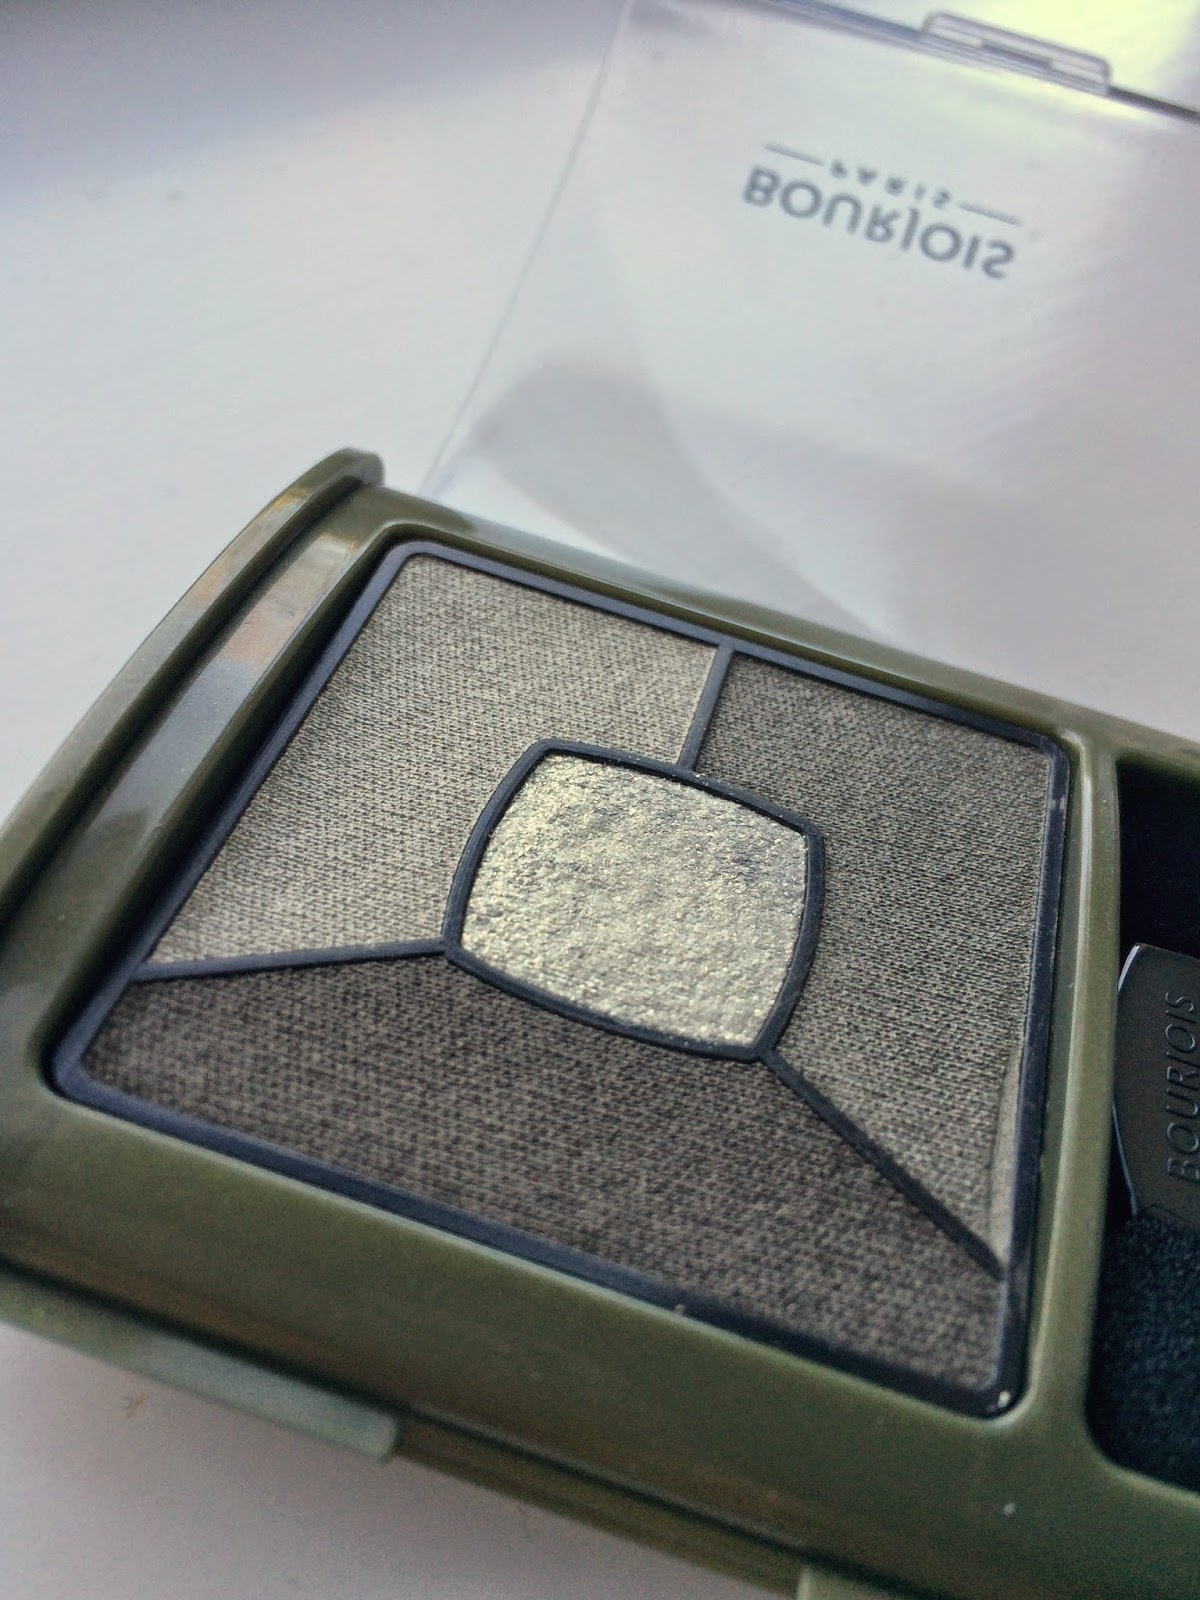 Bourjois-Quad-Smoky-Stories-eyeshadow-rock-this-khaki-green